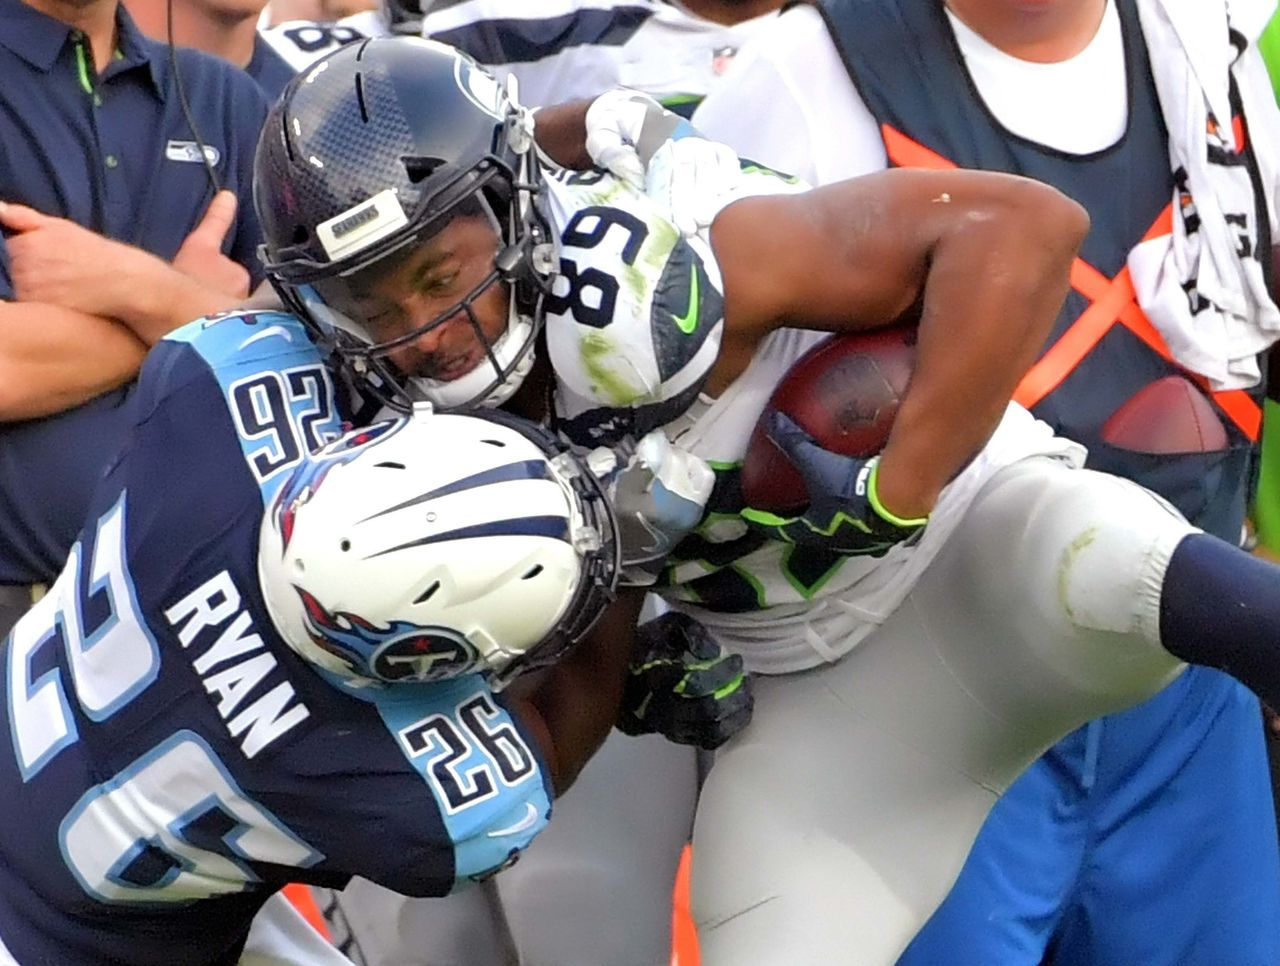 Report: Seahawks' Baldwin to have MRI on groin; injury not thought serious